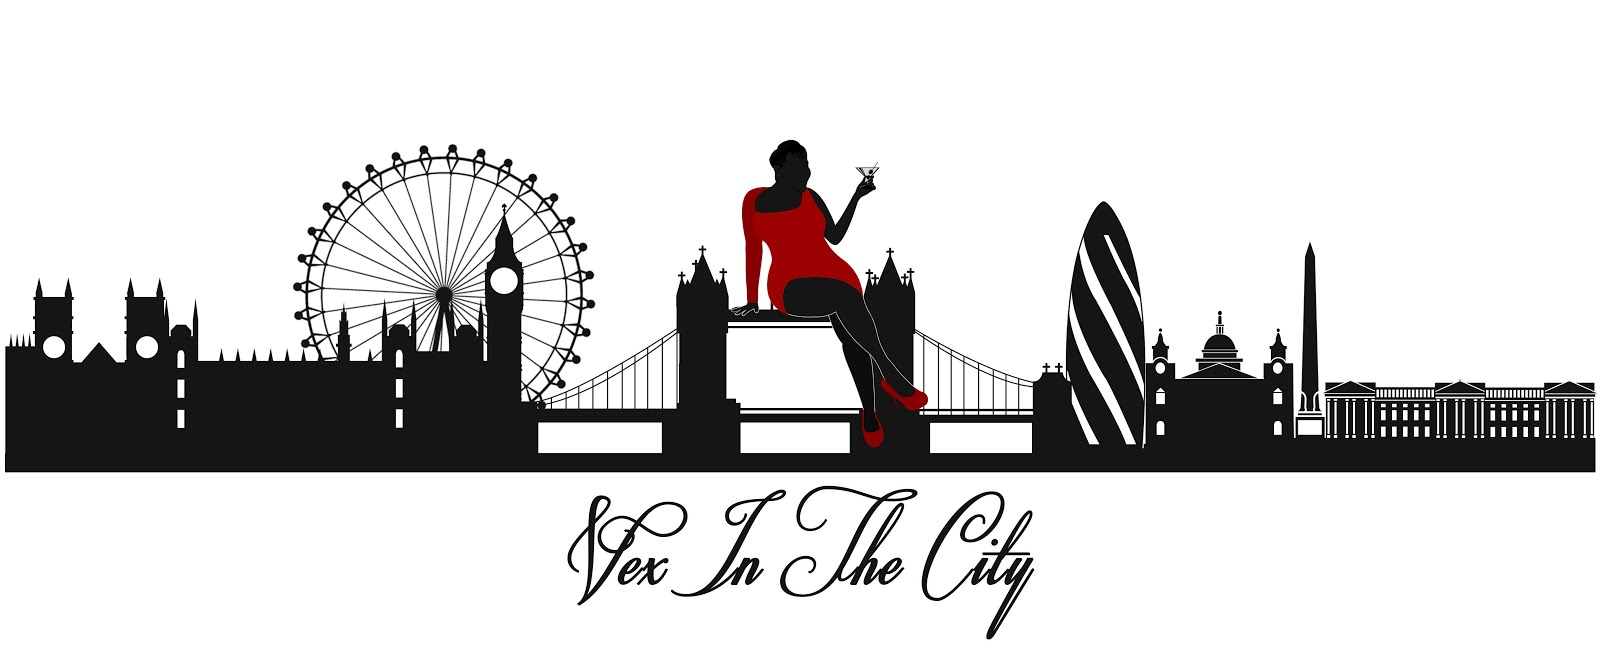 Vex In The City